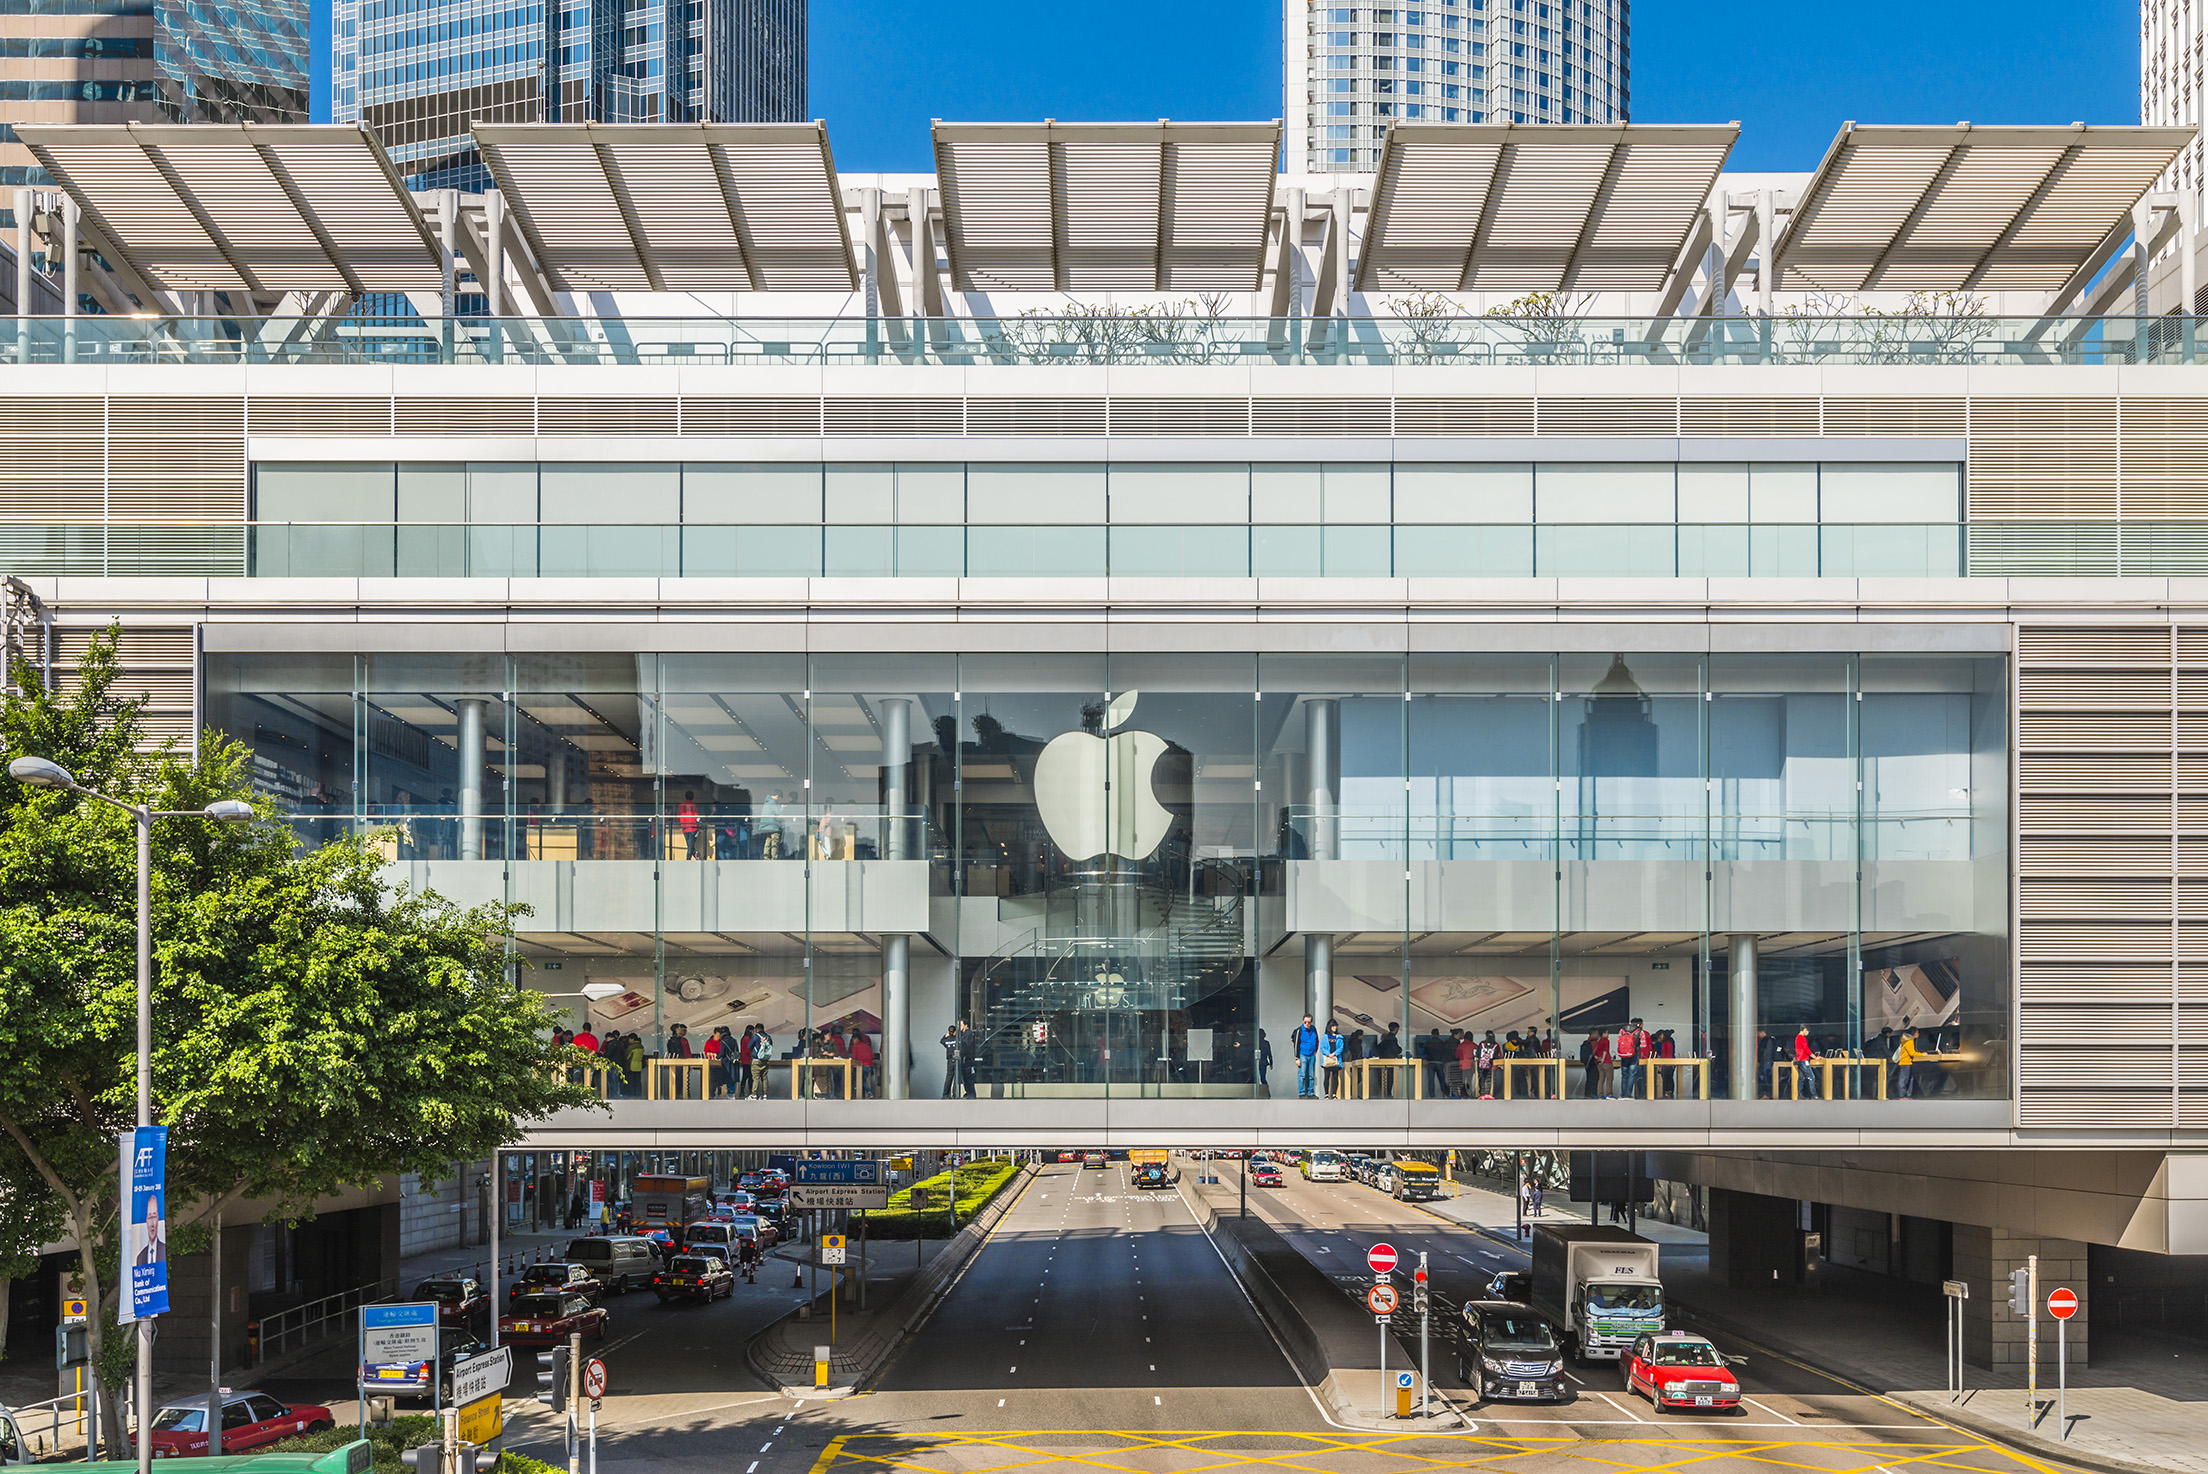 jeb_group-custom_projects-apple_Store-hk-05.jpg